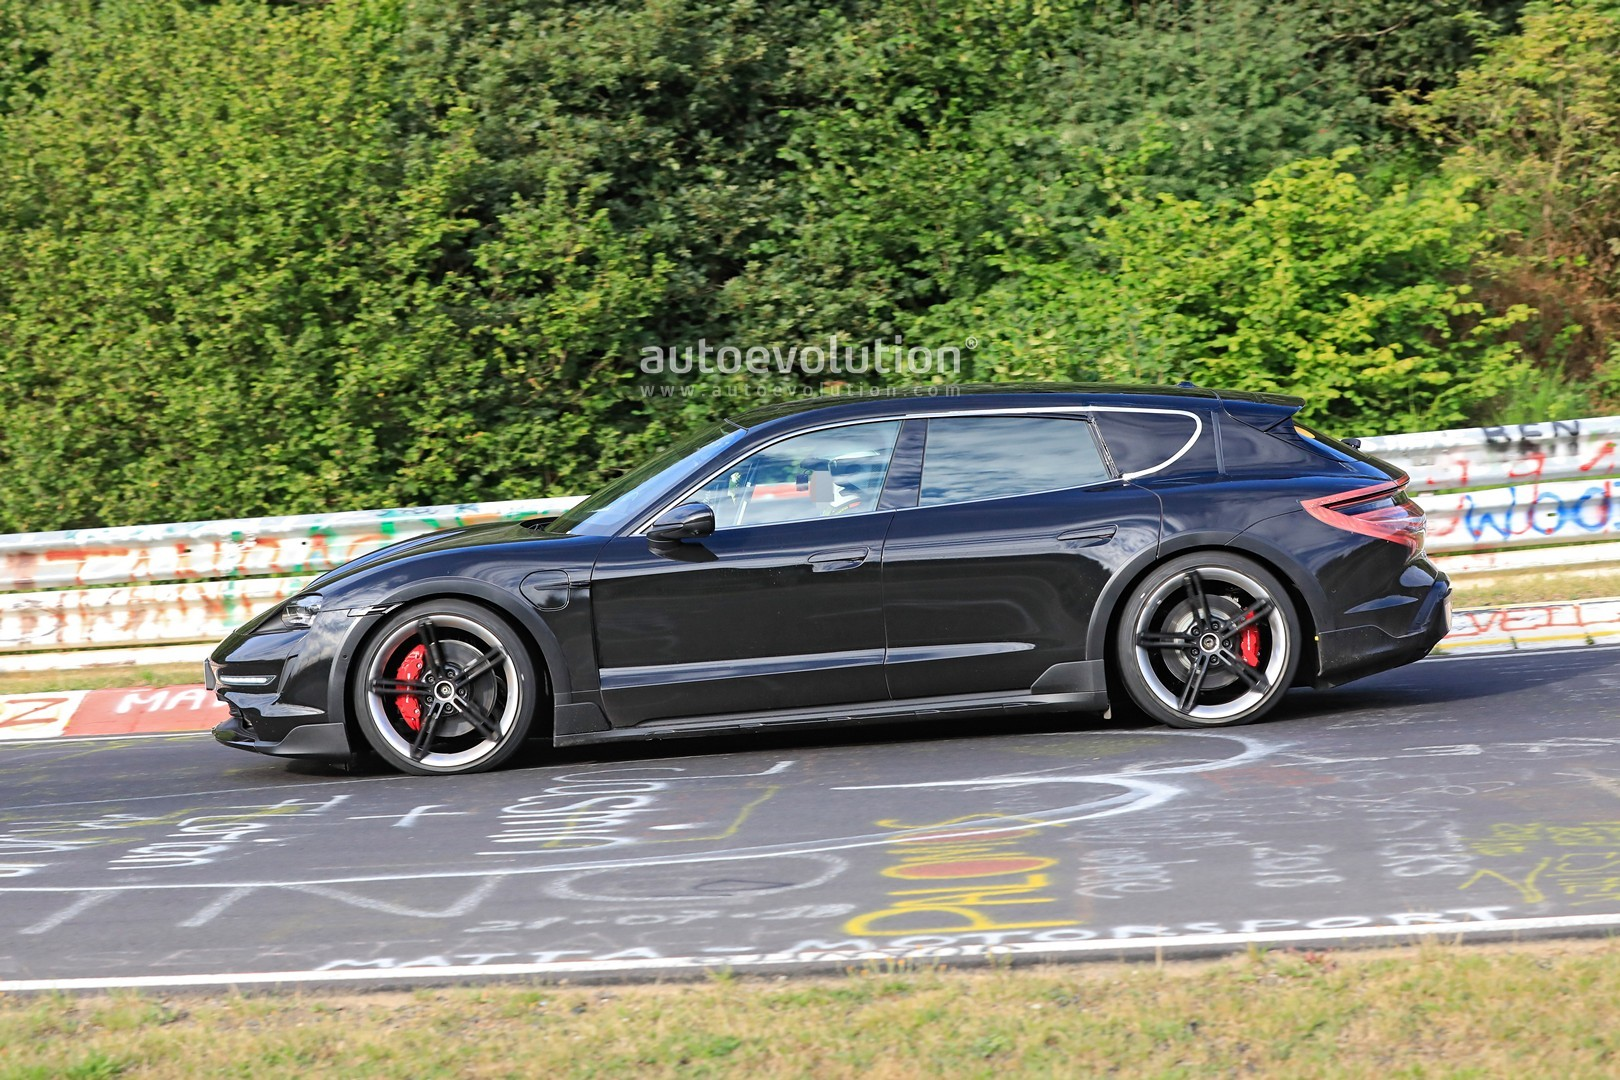 2020 - [Porsche] Taycan Sport Turismo - Page 2 Porsche-taycan-cross-turismo-spied-testing-hard-at-the-nurburgring_4